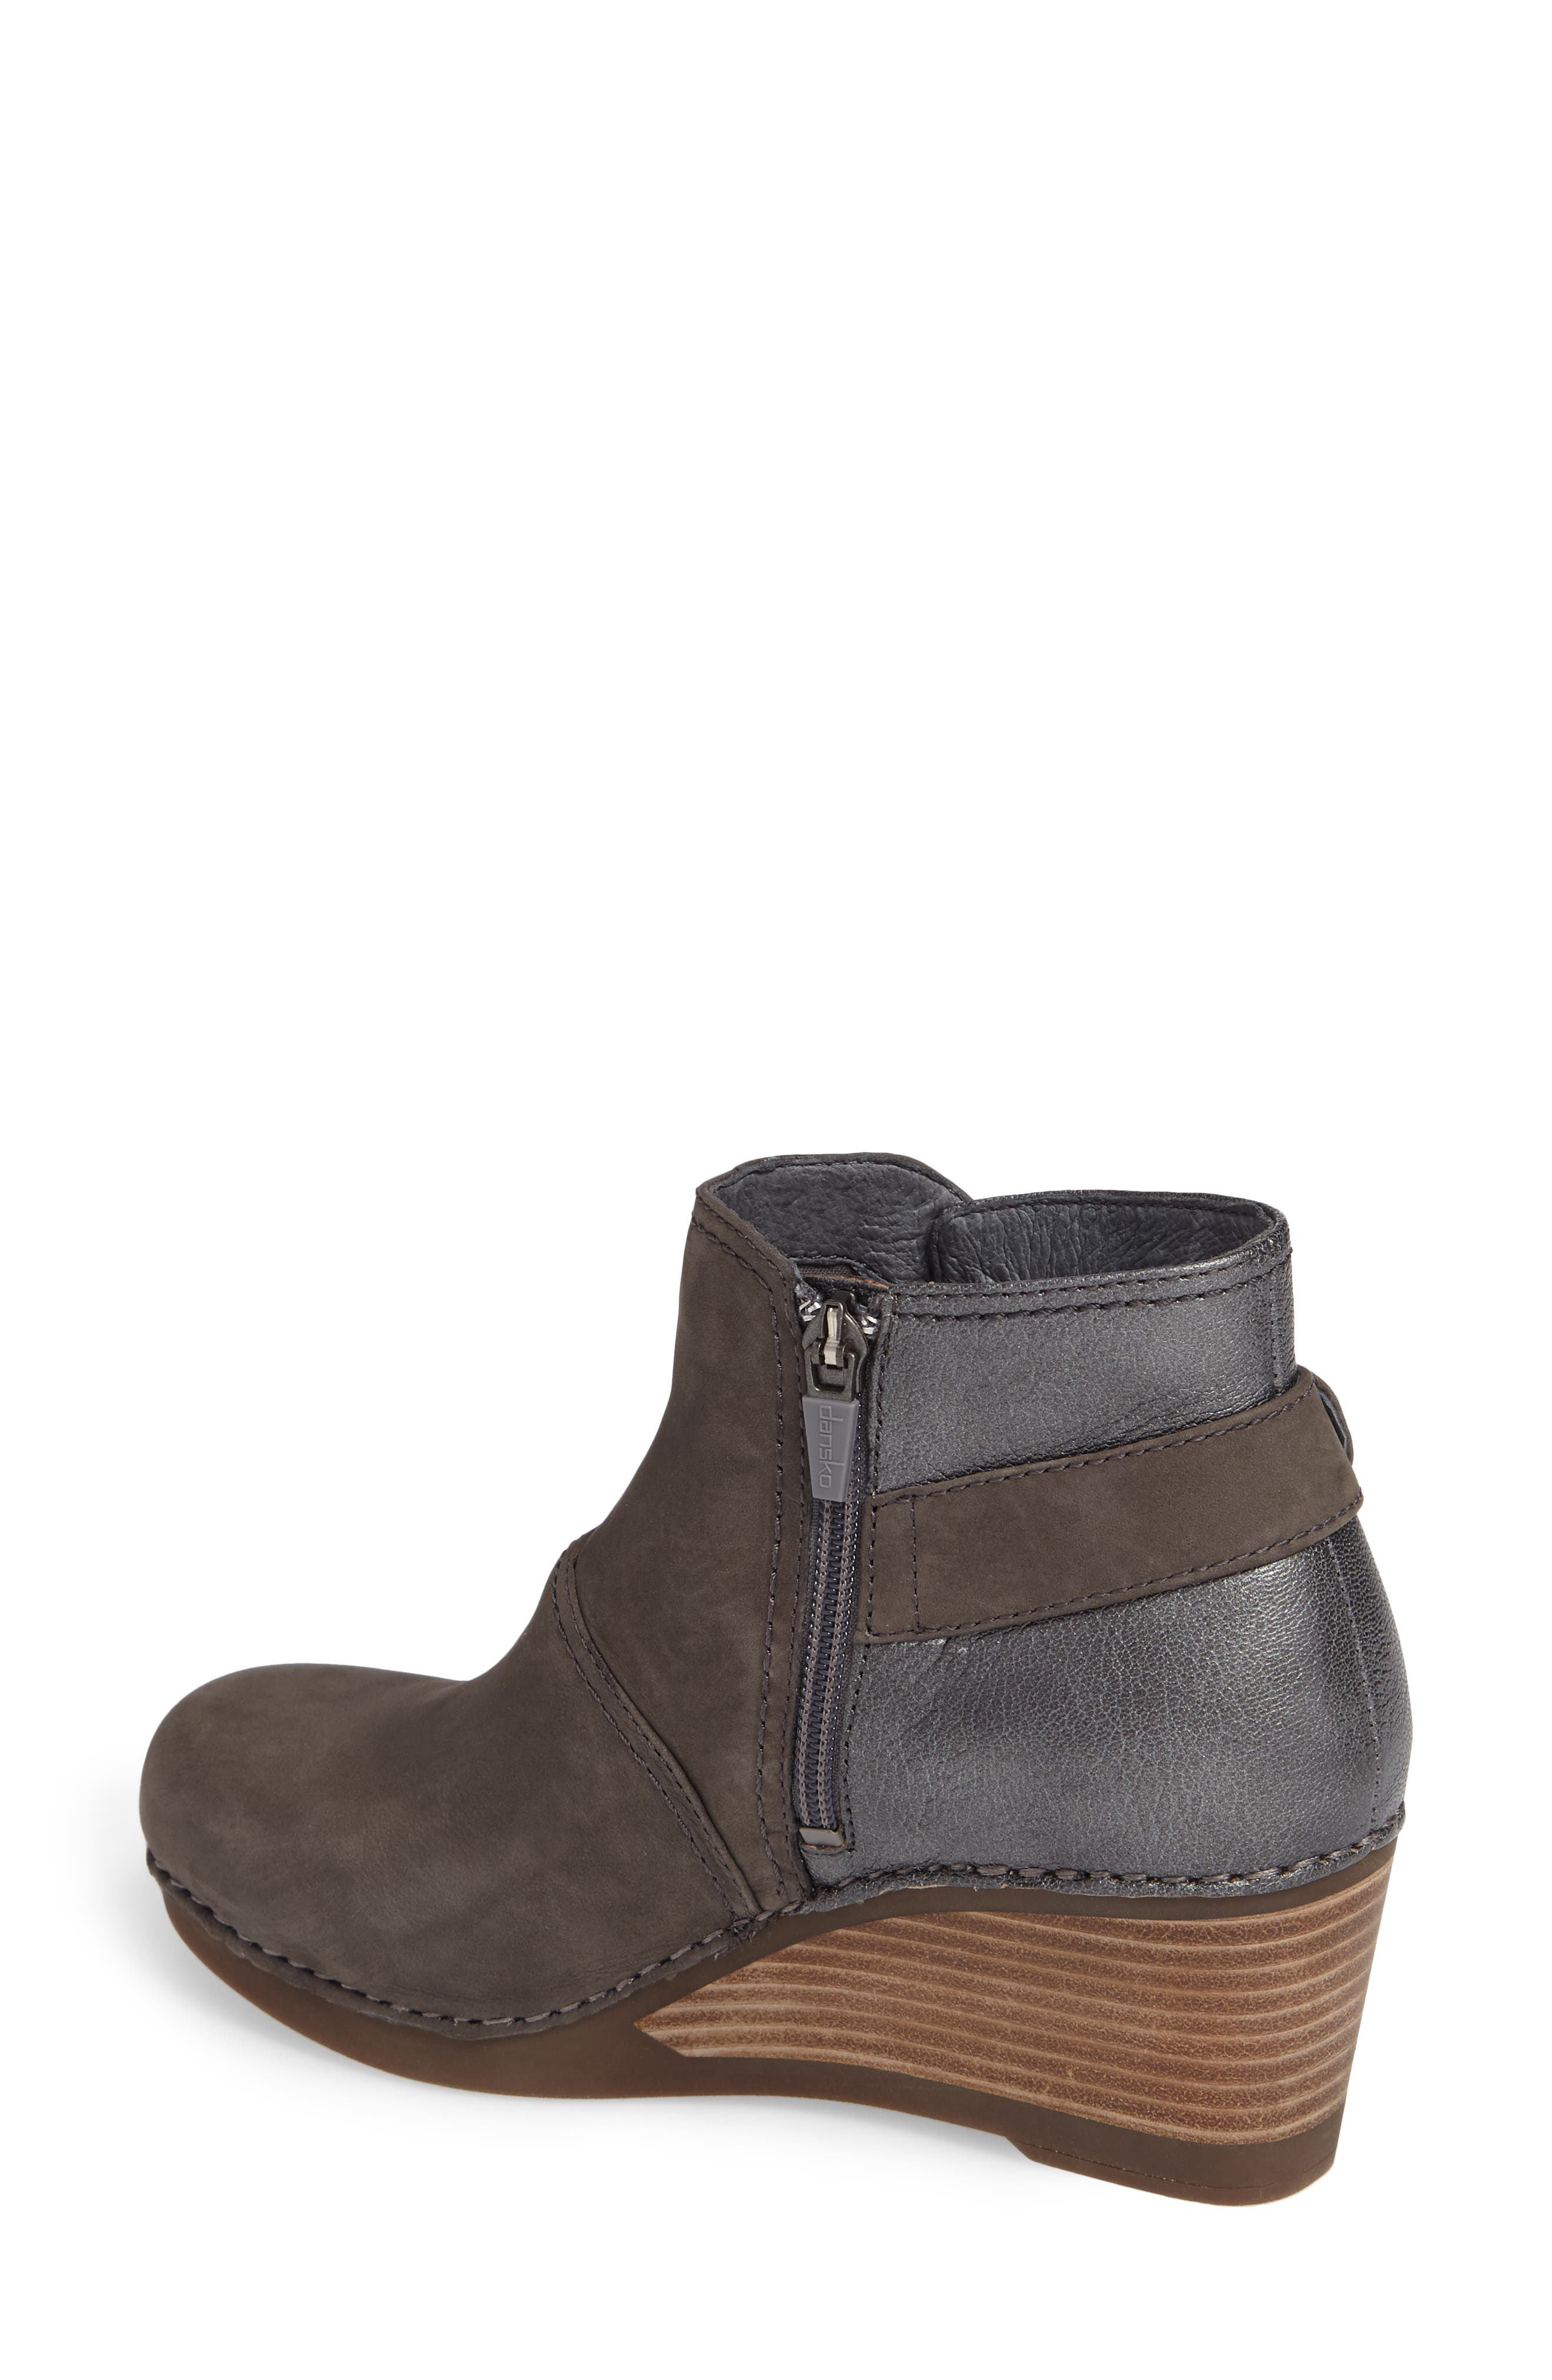 'Shirley' Wedge Bootie,                             Alternate thumbnail 2, color,                             Grey Nubuck Leather